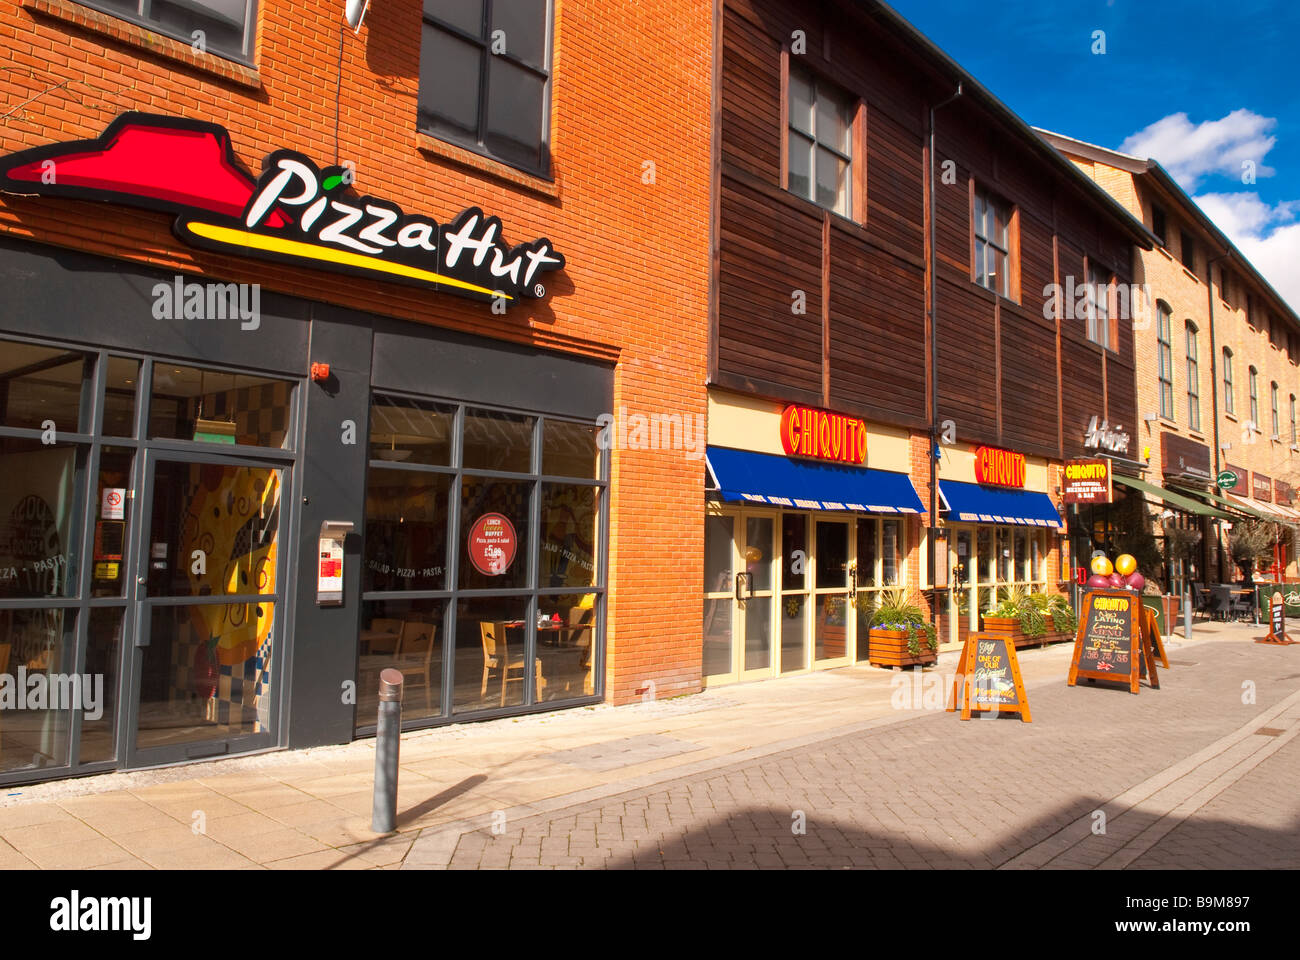 Pizza Hut Chiquito The Original Mexican Grill Bar At The Stock